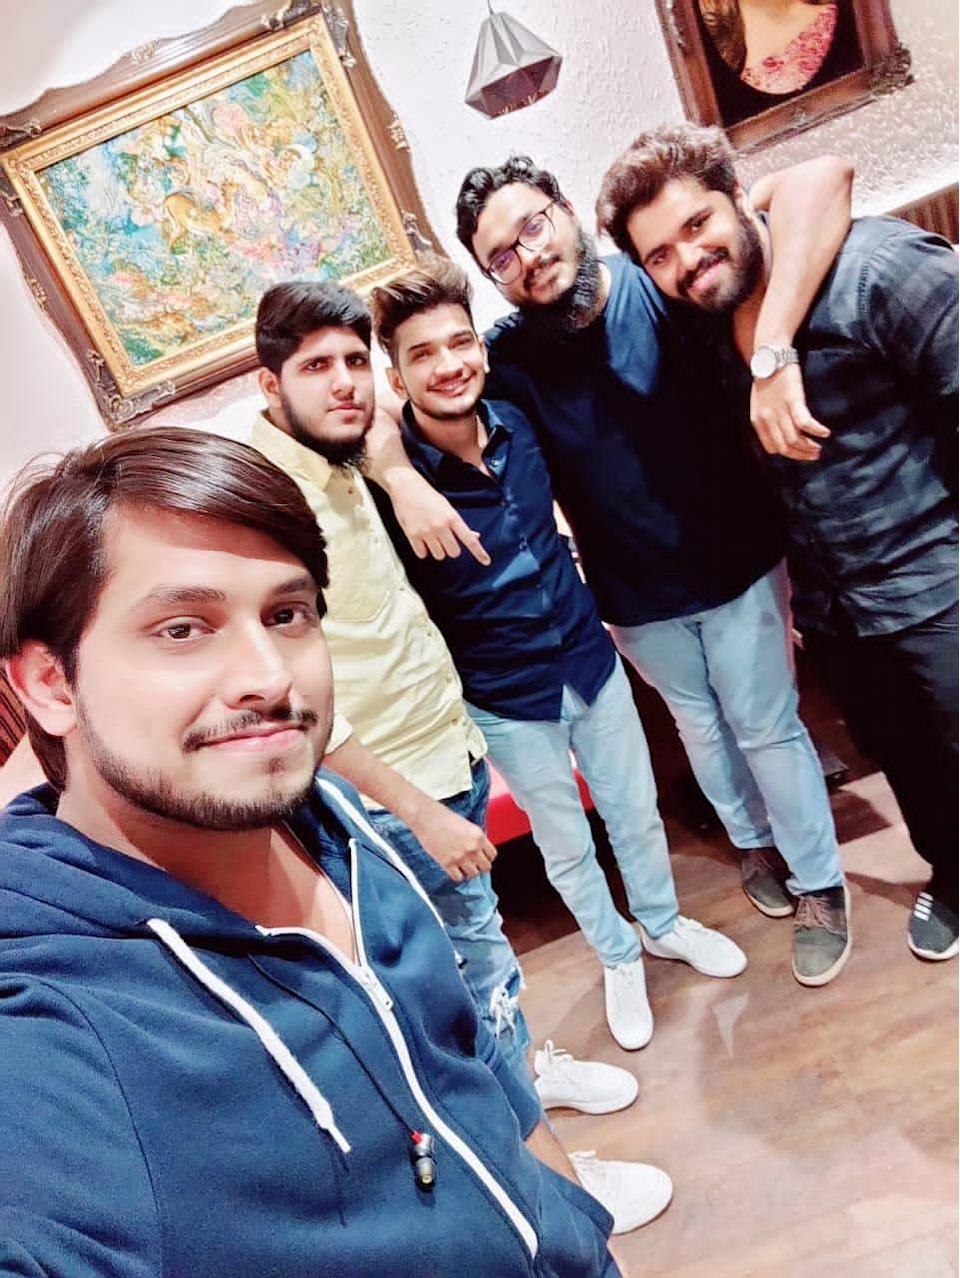 (From left) Sadakat, Abdullah, Munawar, Saad and Sagar hanging out after one of Munawar's performances in a restaurant in Mumbai.